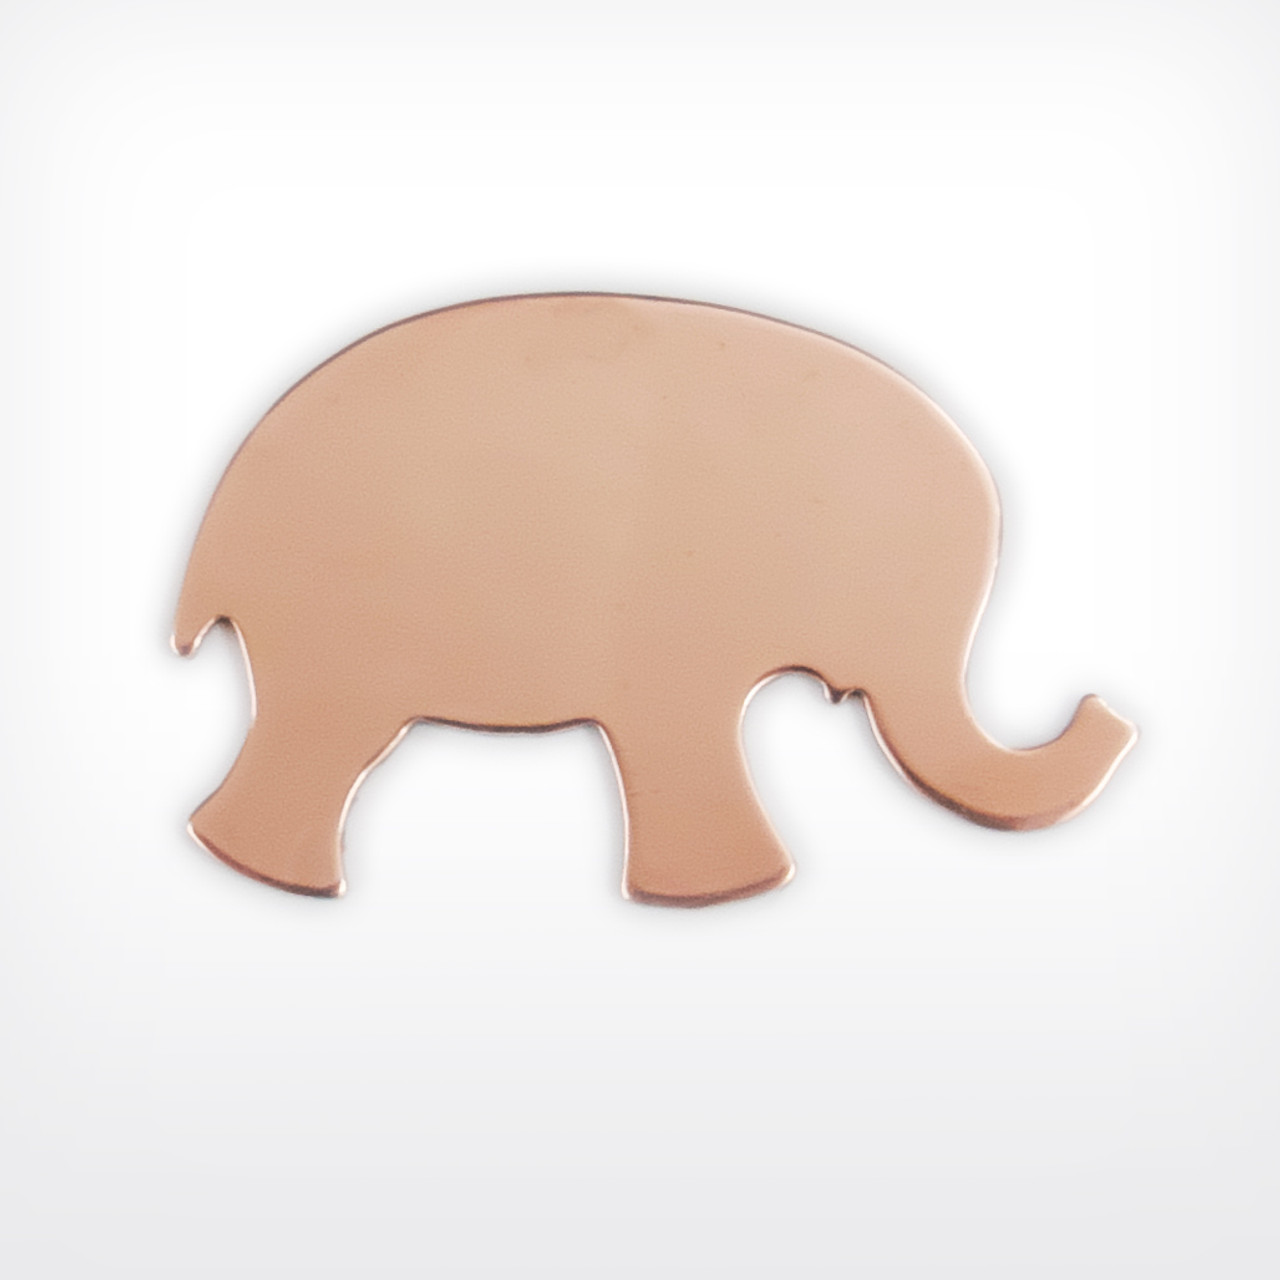 Copper Blank Elephant Stamped Shape for Enamelling & Other Crafts